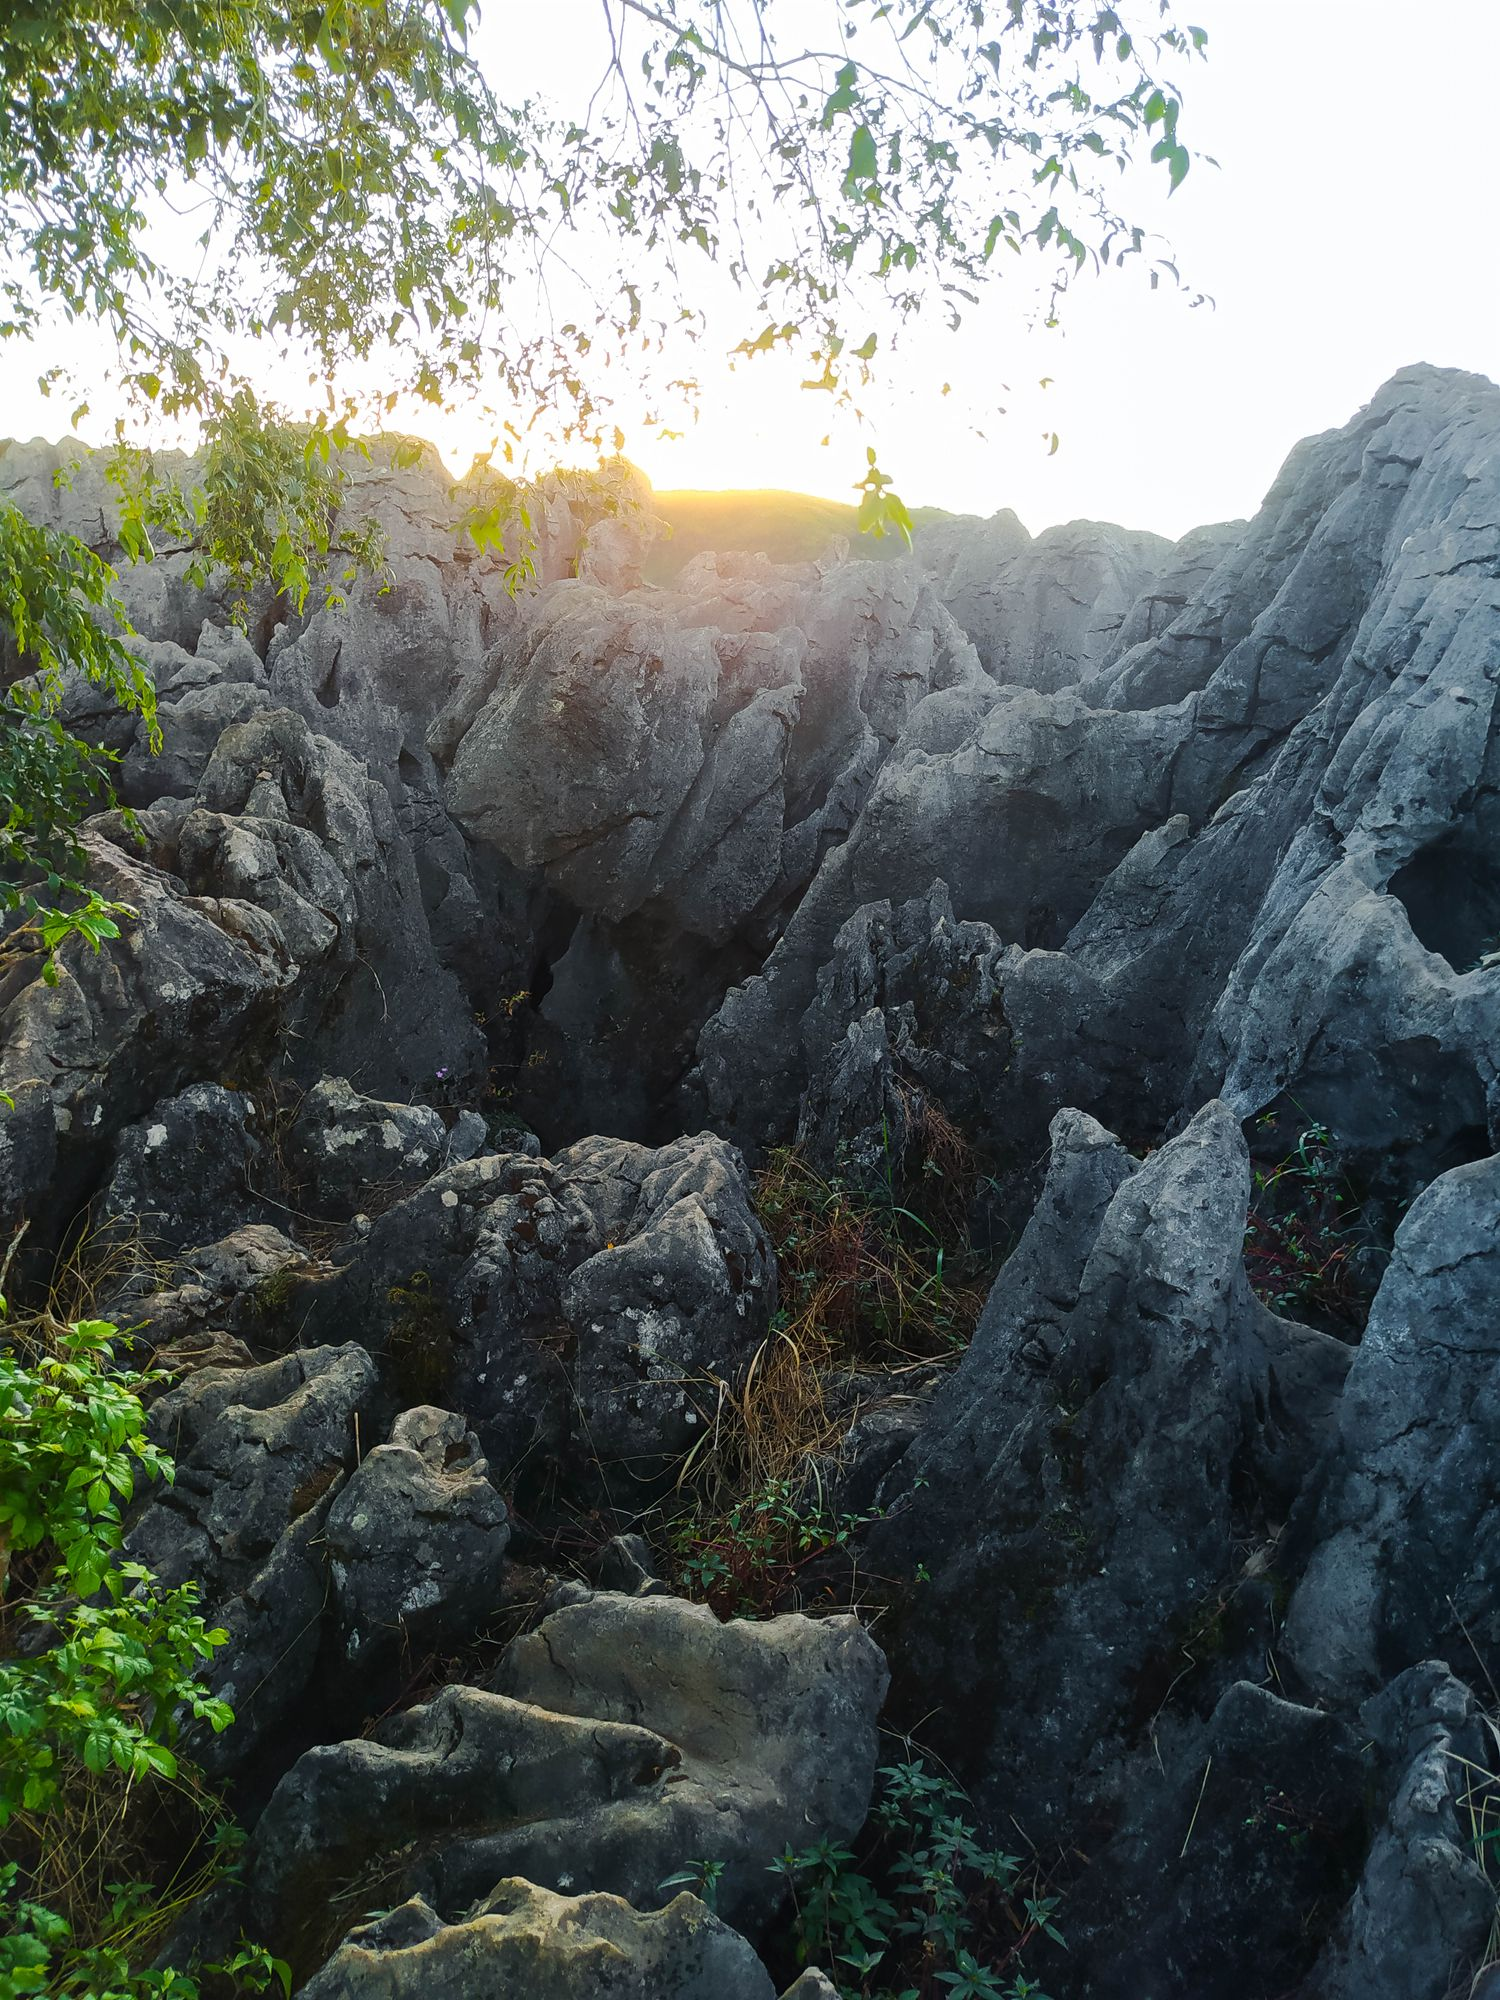 A jumble of limestone rocks interspersed with vegetation at Mount Kalugong